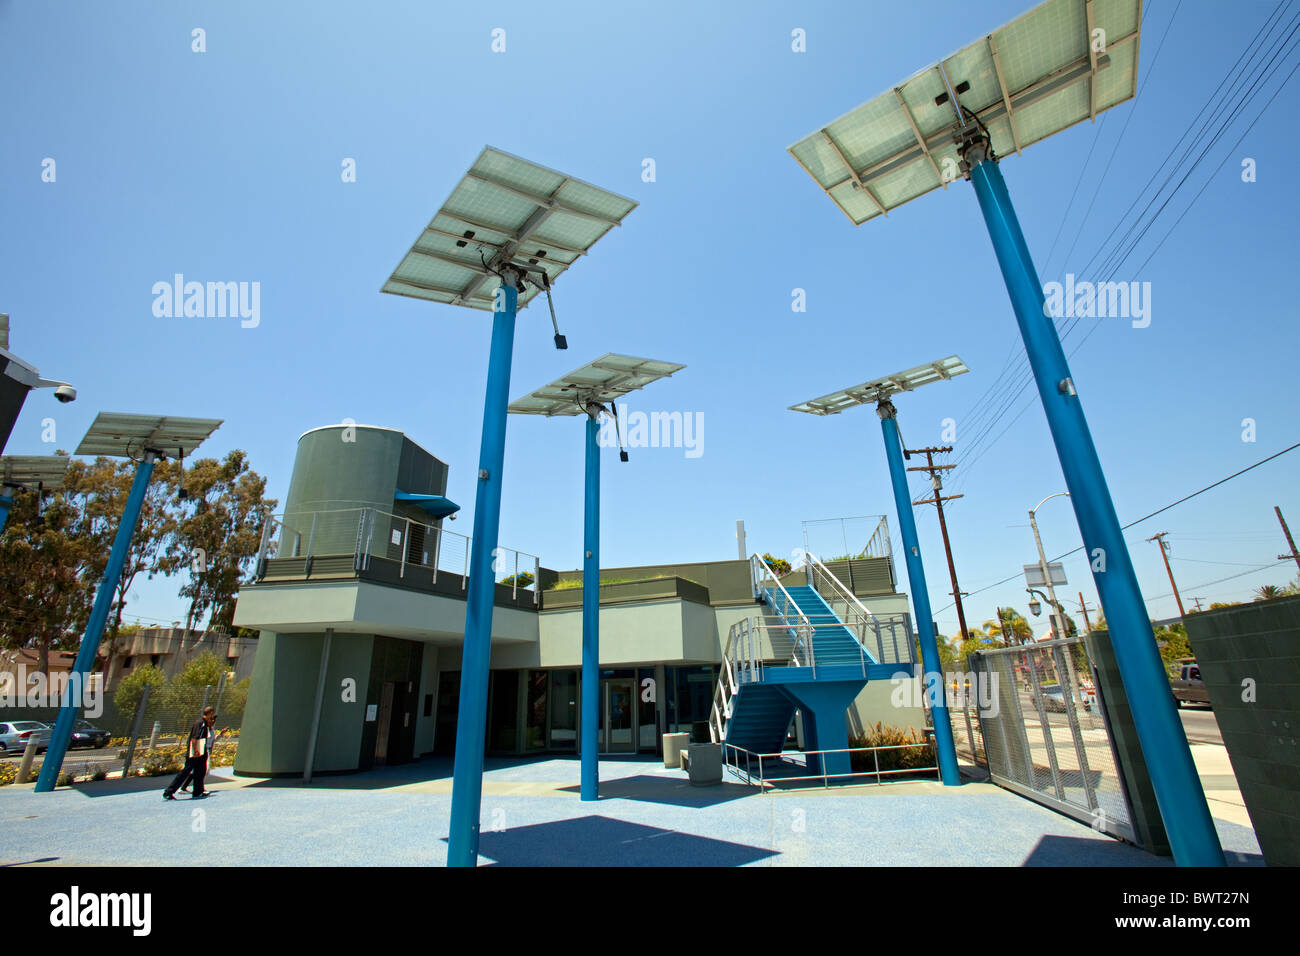 Solar panels in courtyard. The Council District 9 Neighborhood City Hall in South Central Los Angeles - Stock Image